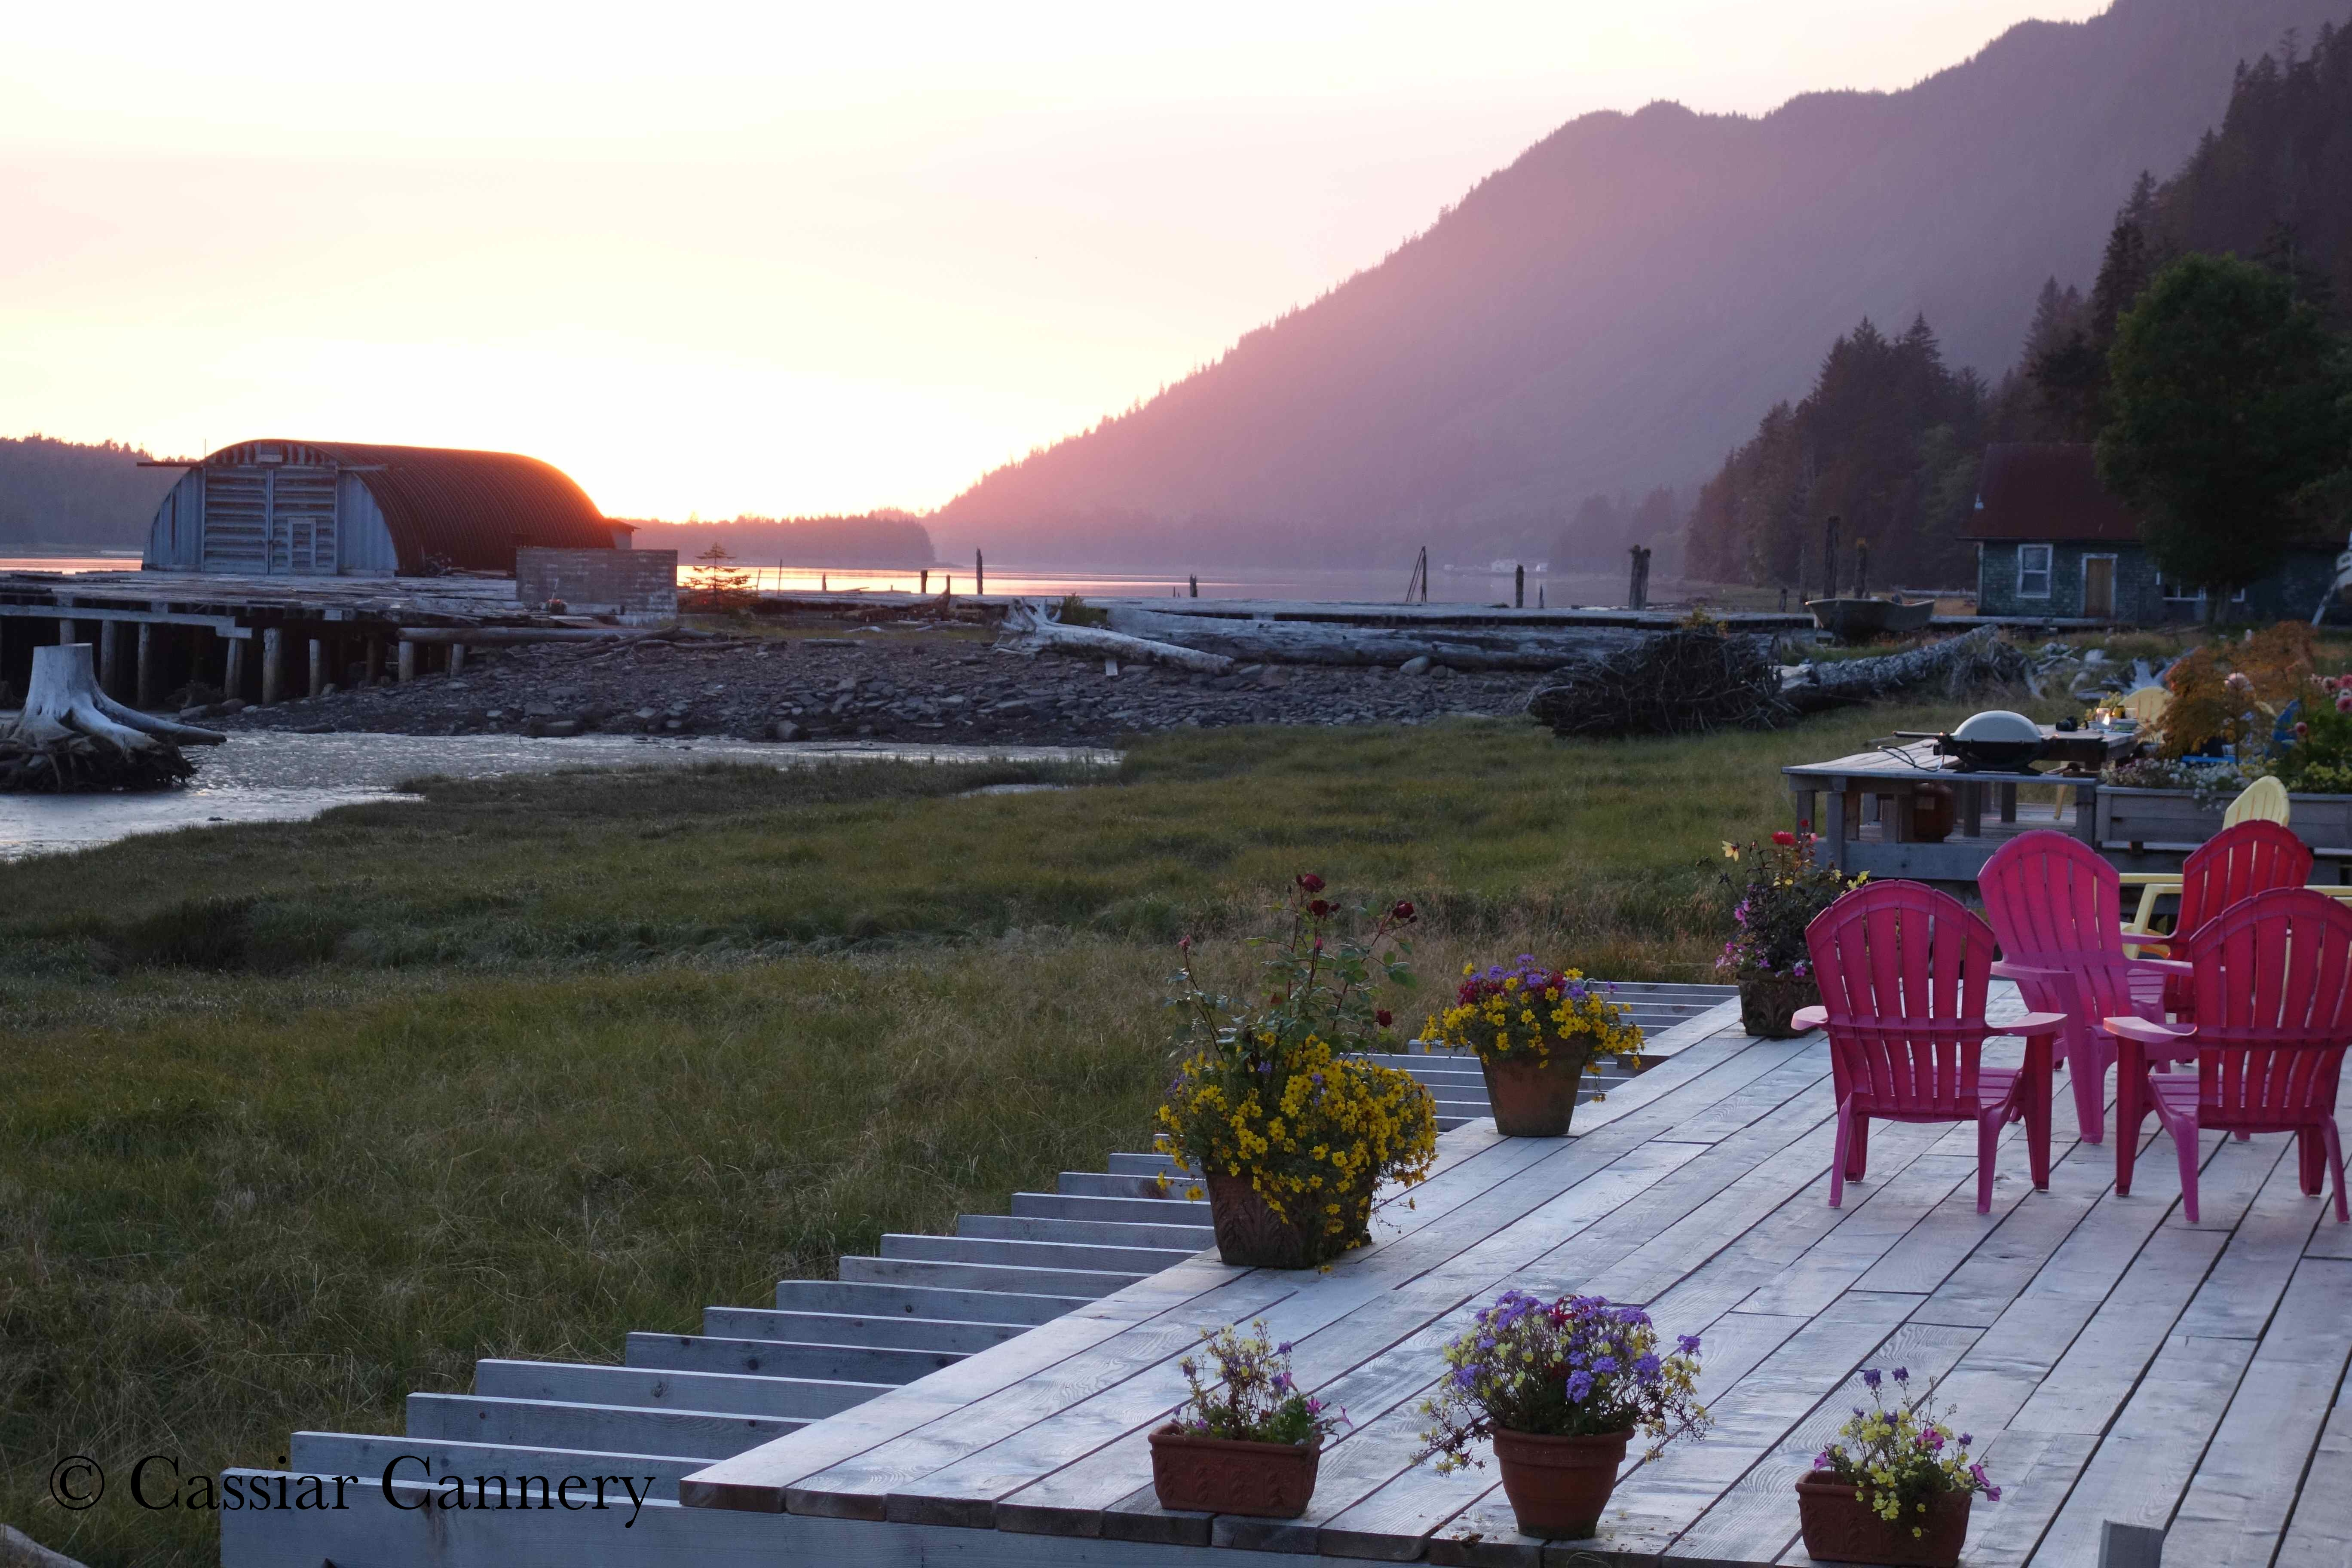 Cassiar Cannery - beautiful sunset from the deck